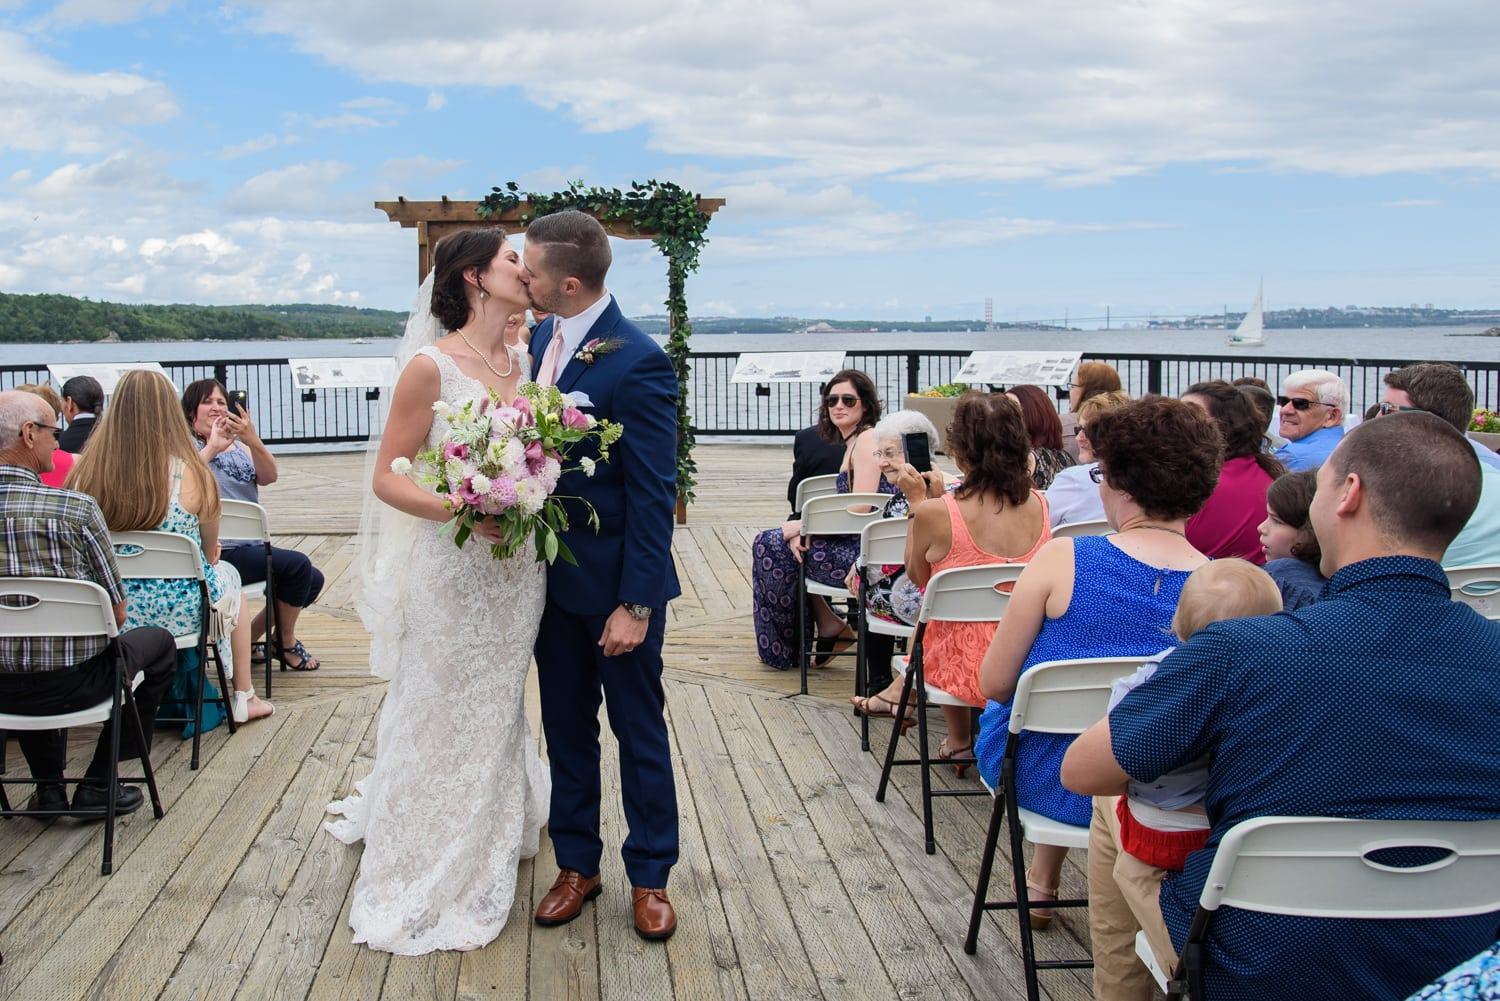 halifax ns wedding photographer, halifax wedding photographers, halifax engagement photographer, engaged, sandra adamson studios, dewolfe park, dewolfe park weddings, bride, groom, wedding ceremony, first kiss, first look, bridesmaids, groomsmen